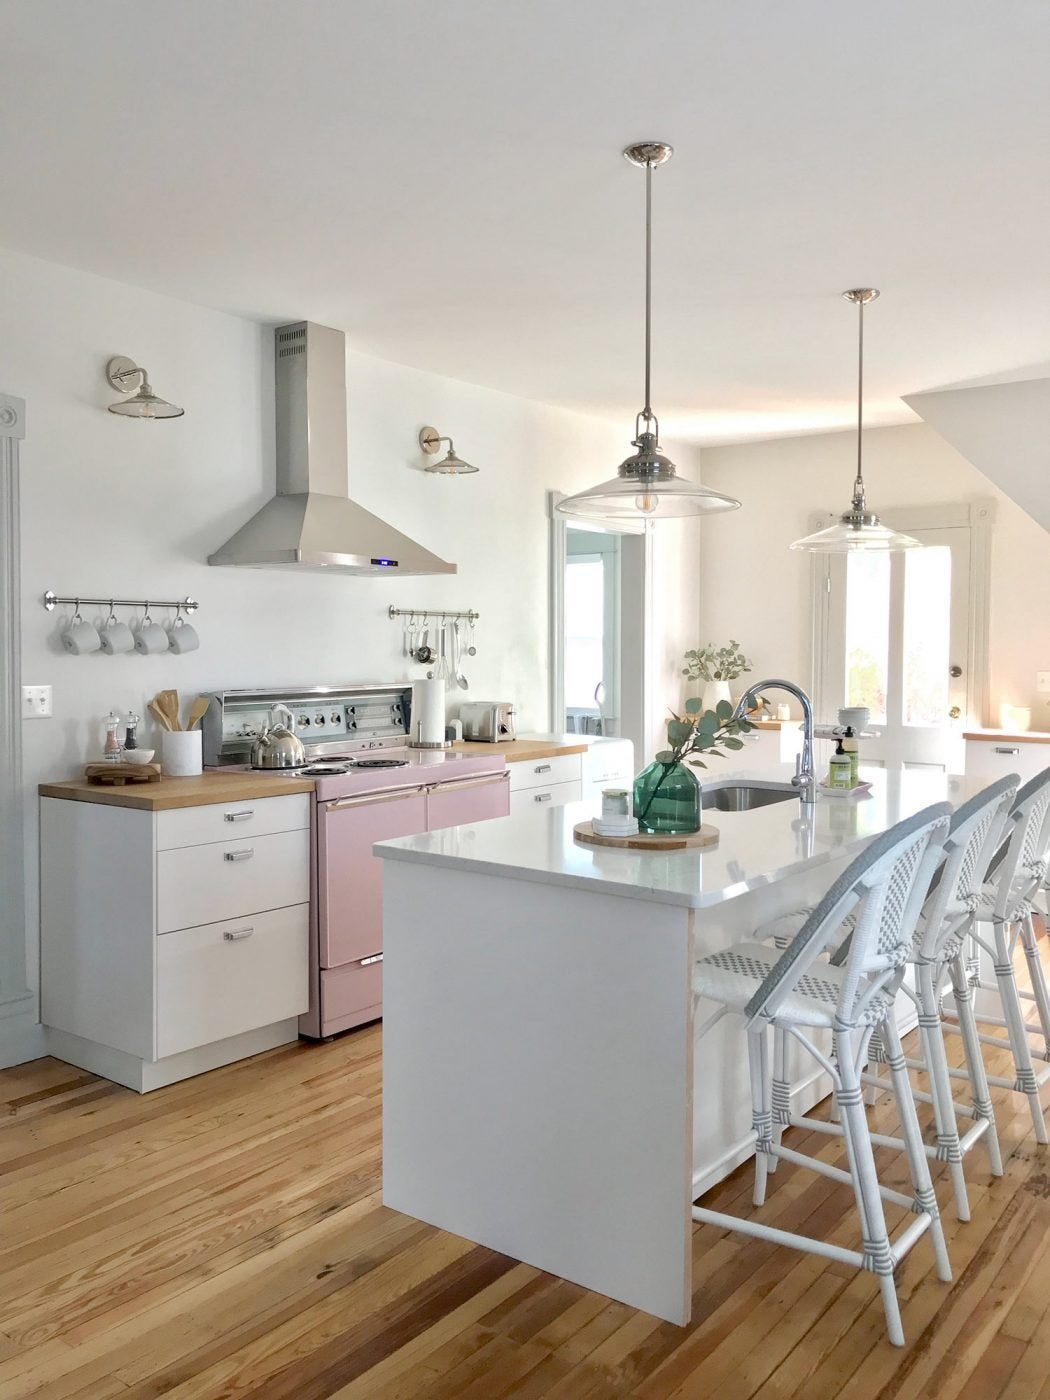 Beach house dec kitchen pink stove angle